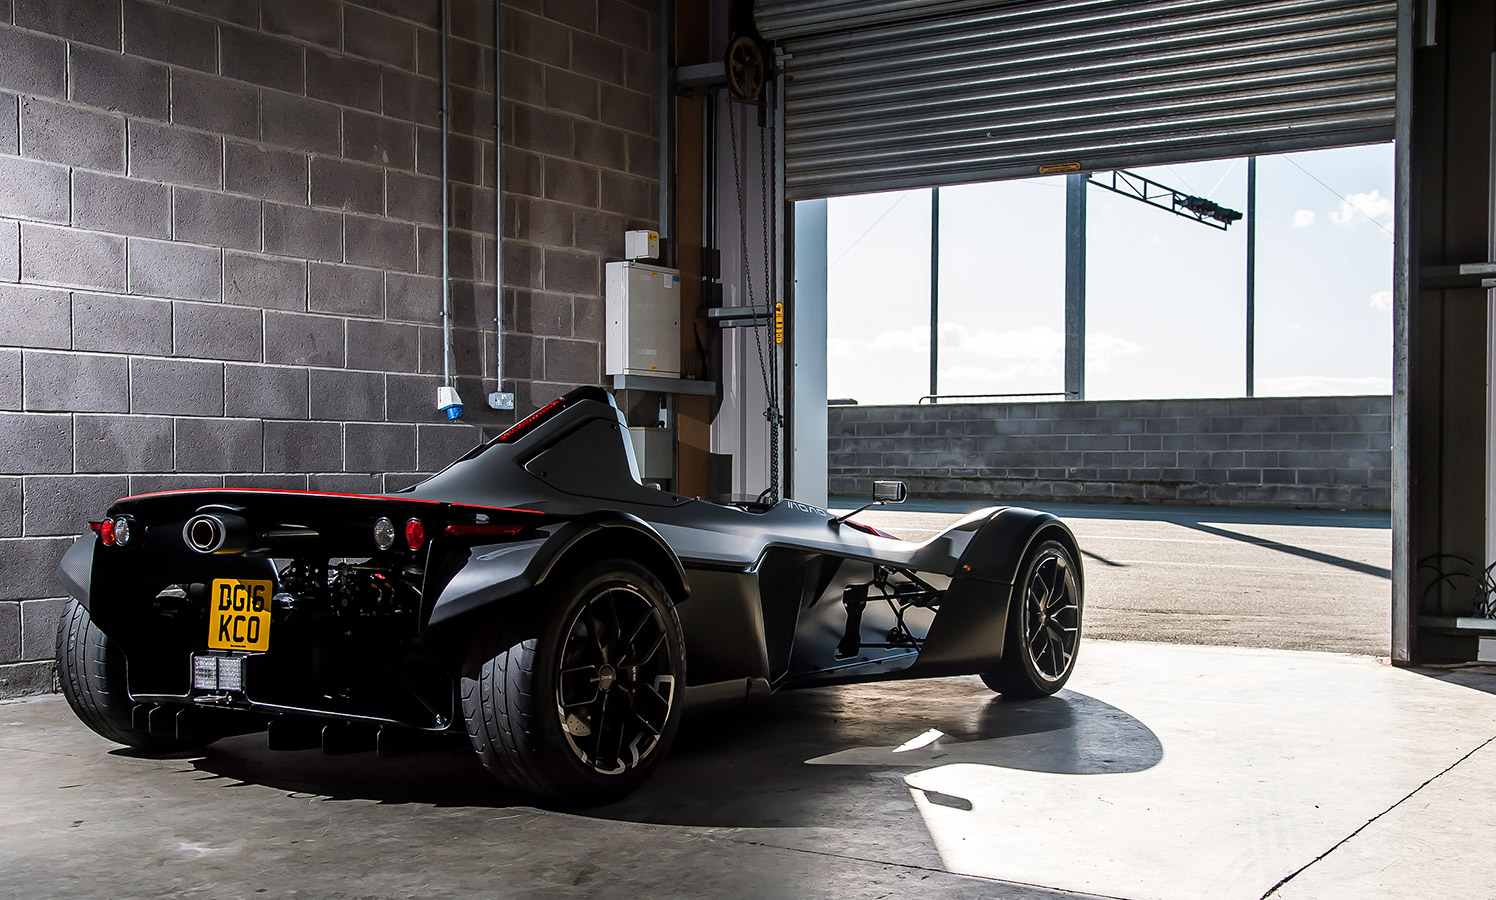 BAC Mono Supports Local Community